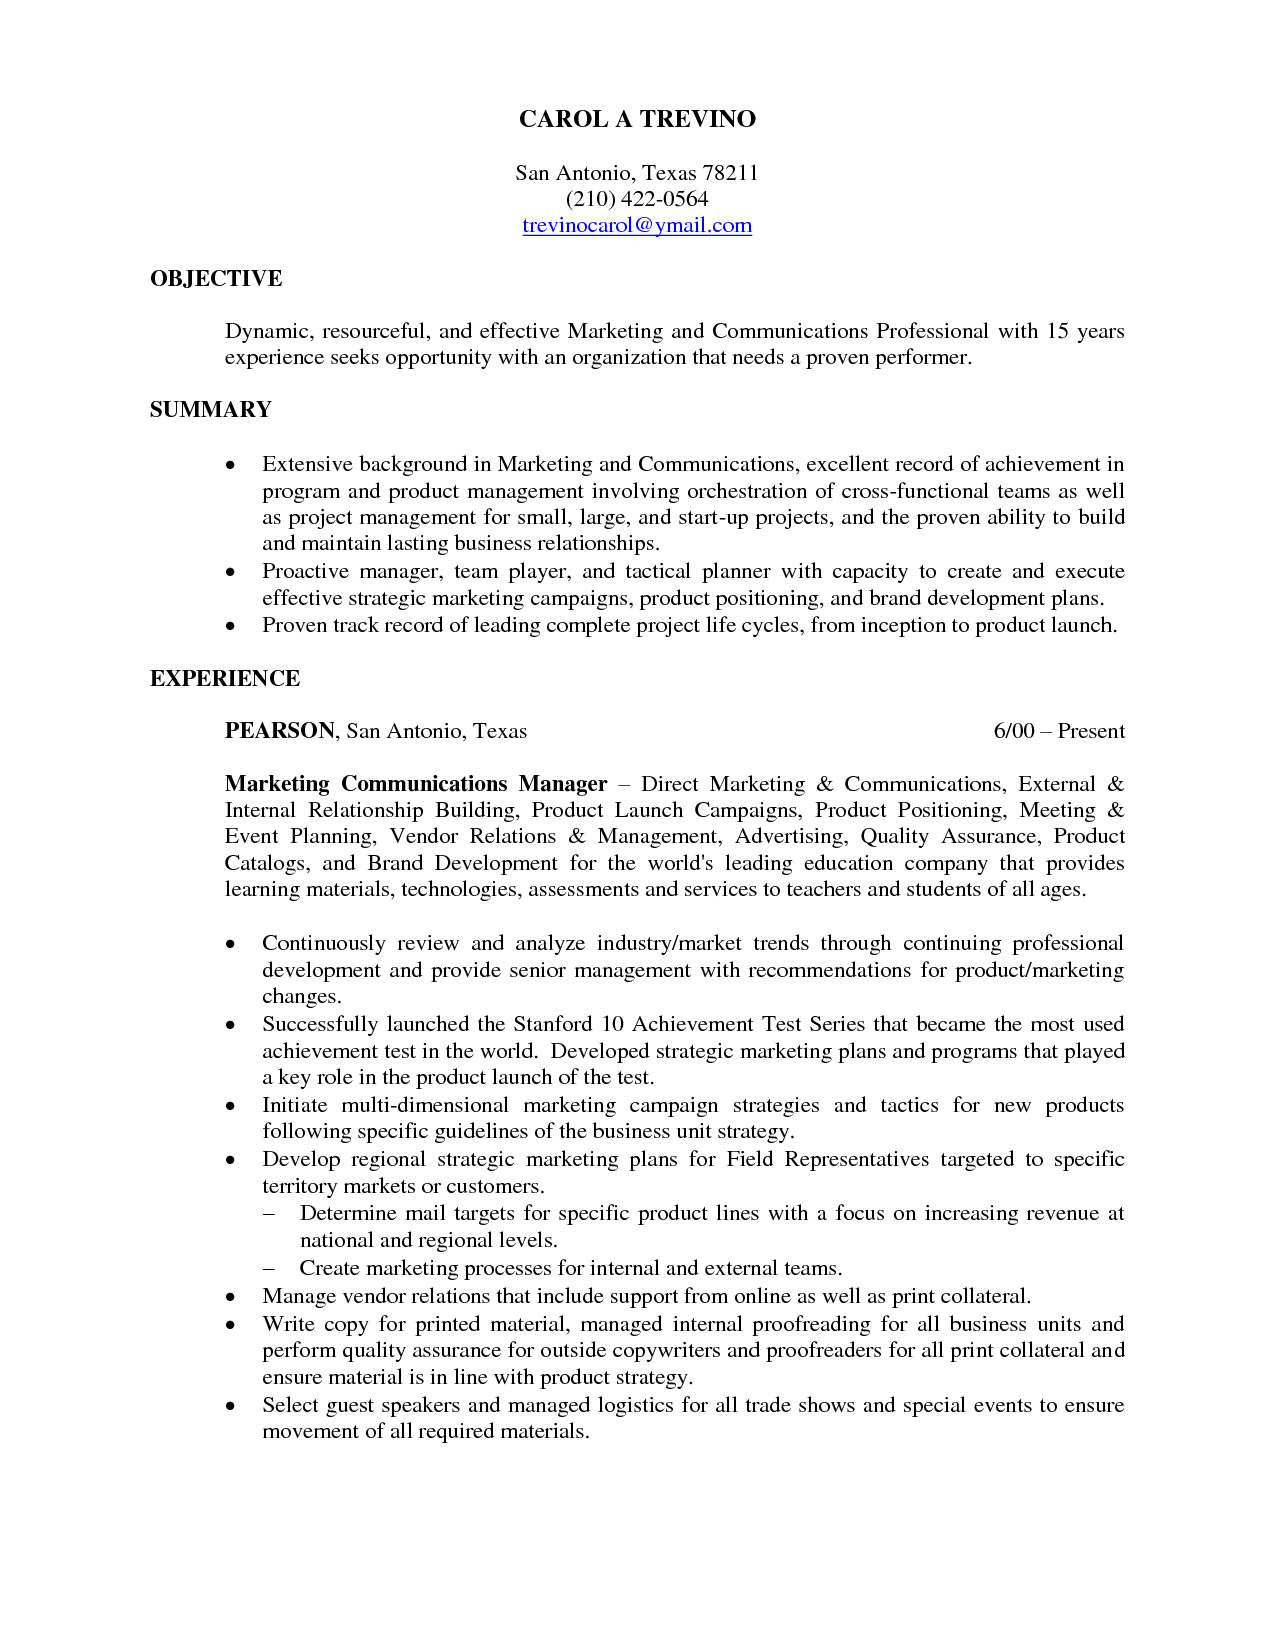 resume objective template. my objective resume 9 examples of ...